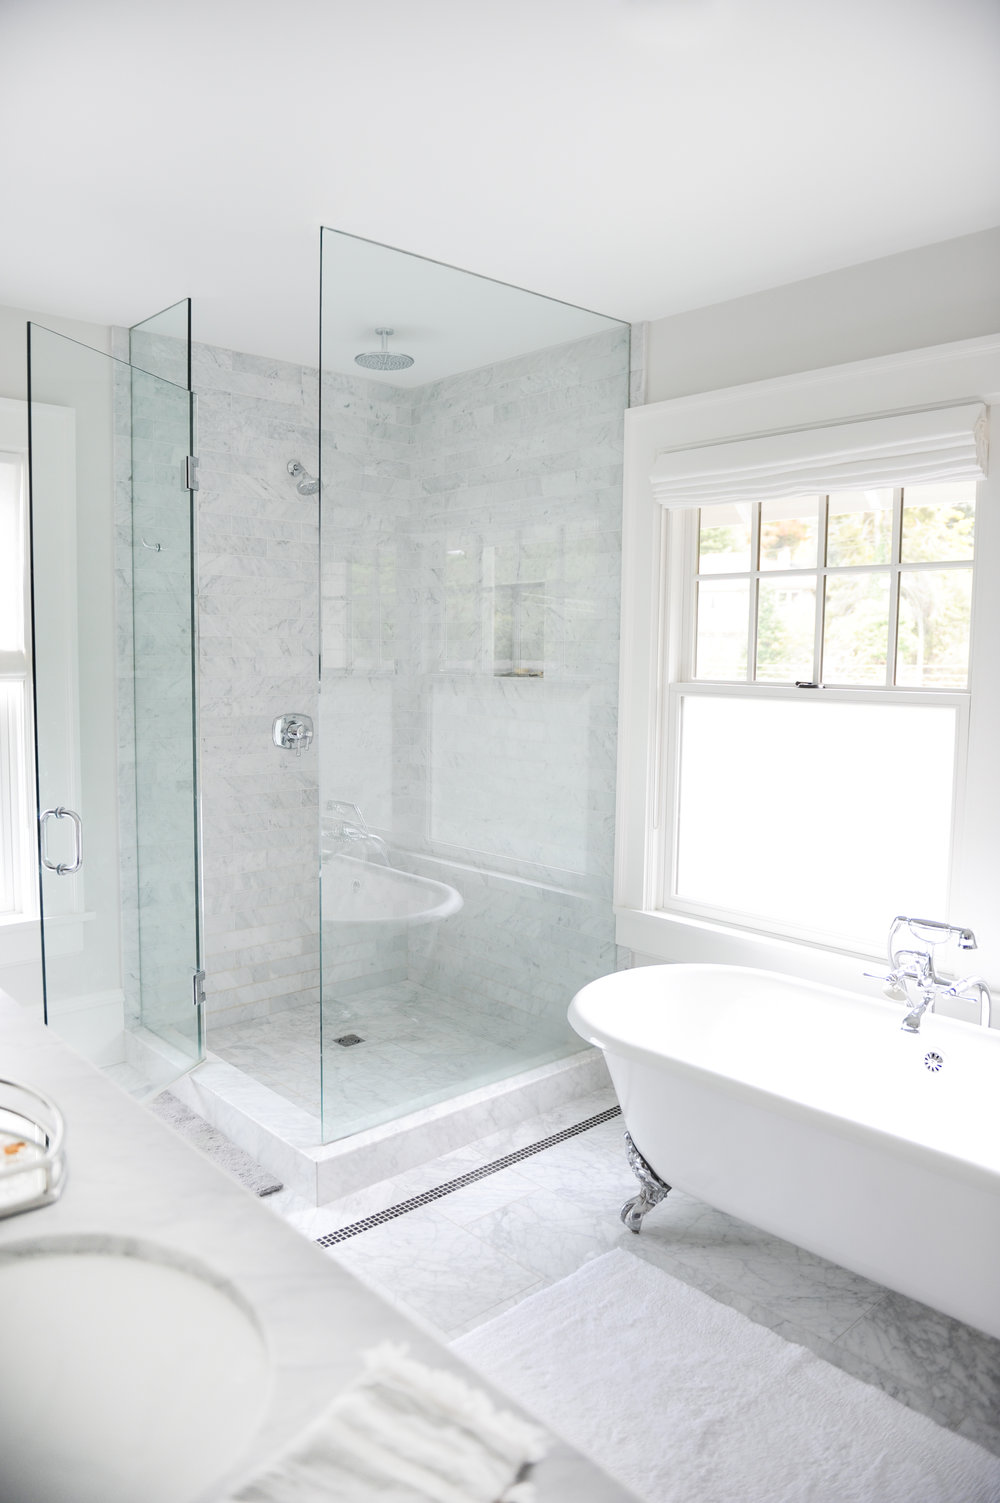 A tiled bathroom with a clawfoot tub and glass stand up shower with rain shower head sit beside a large window.